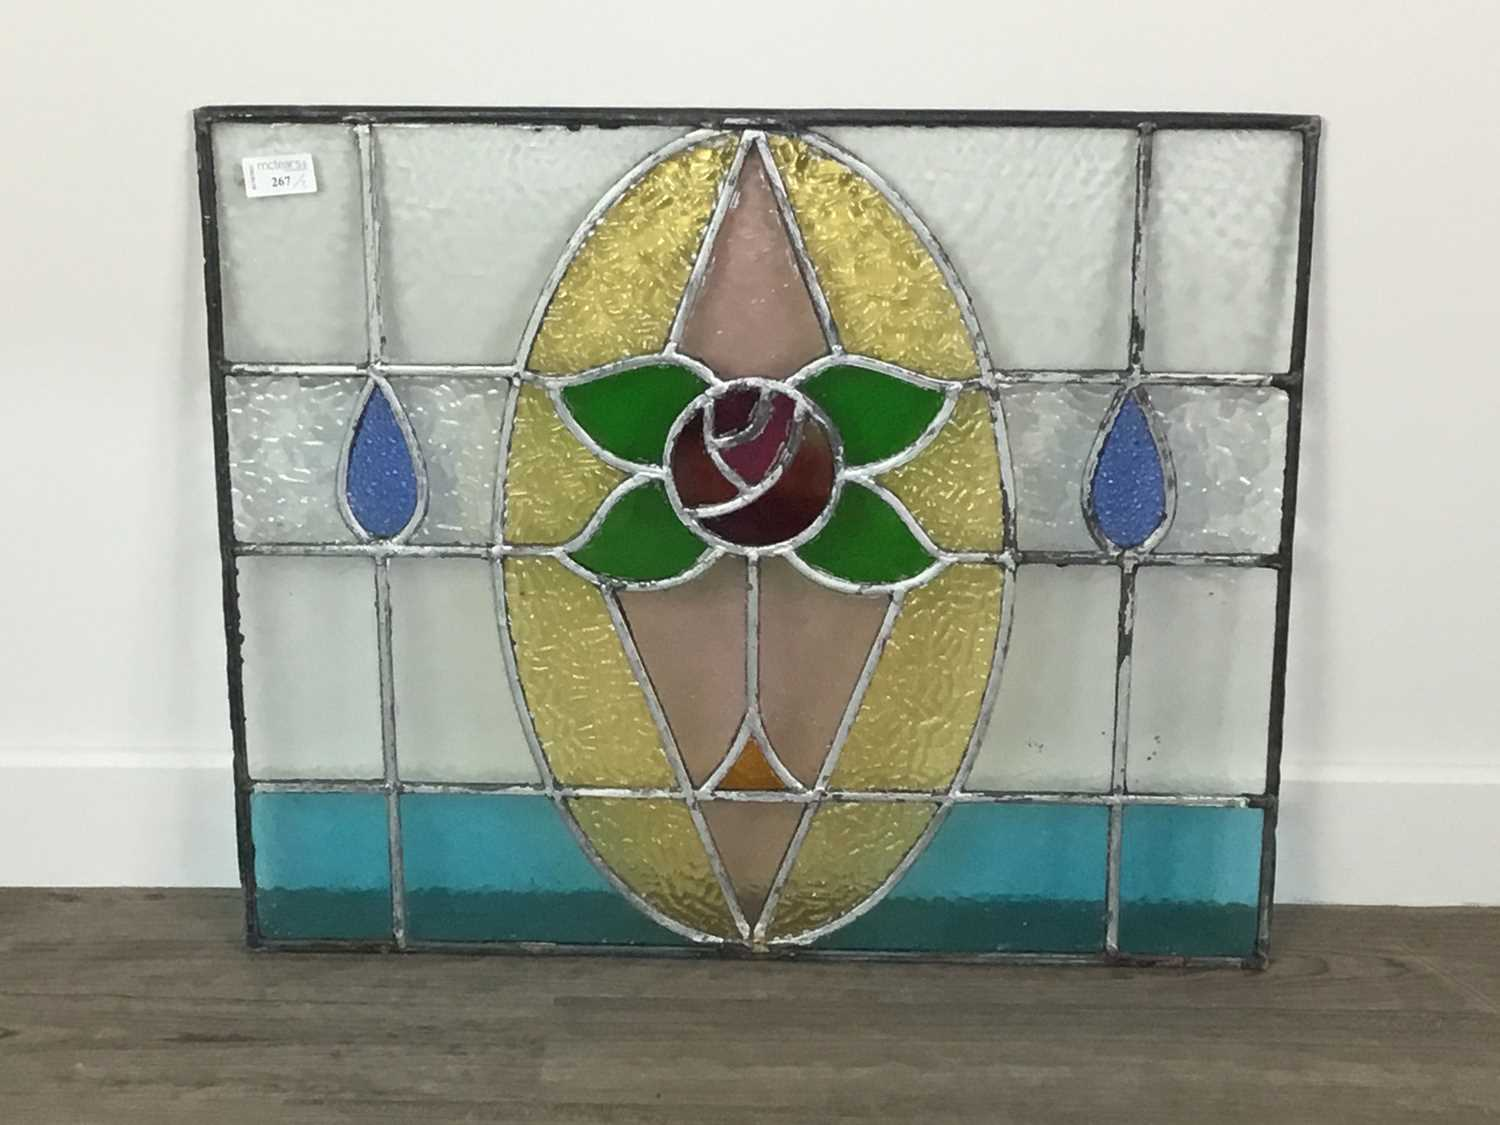 Lot AN EARLY 20TH CENTURY LEADED GLASS PANEL, ALONG WITH ANOTHER